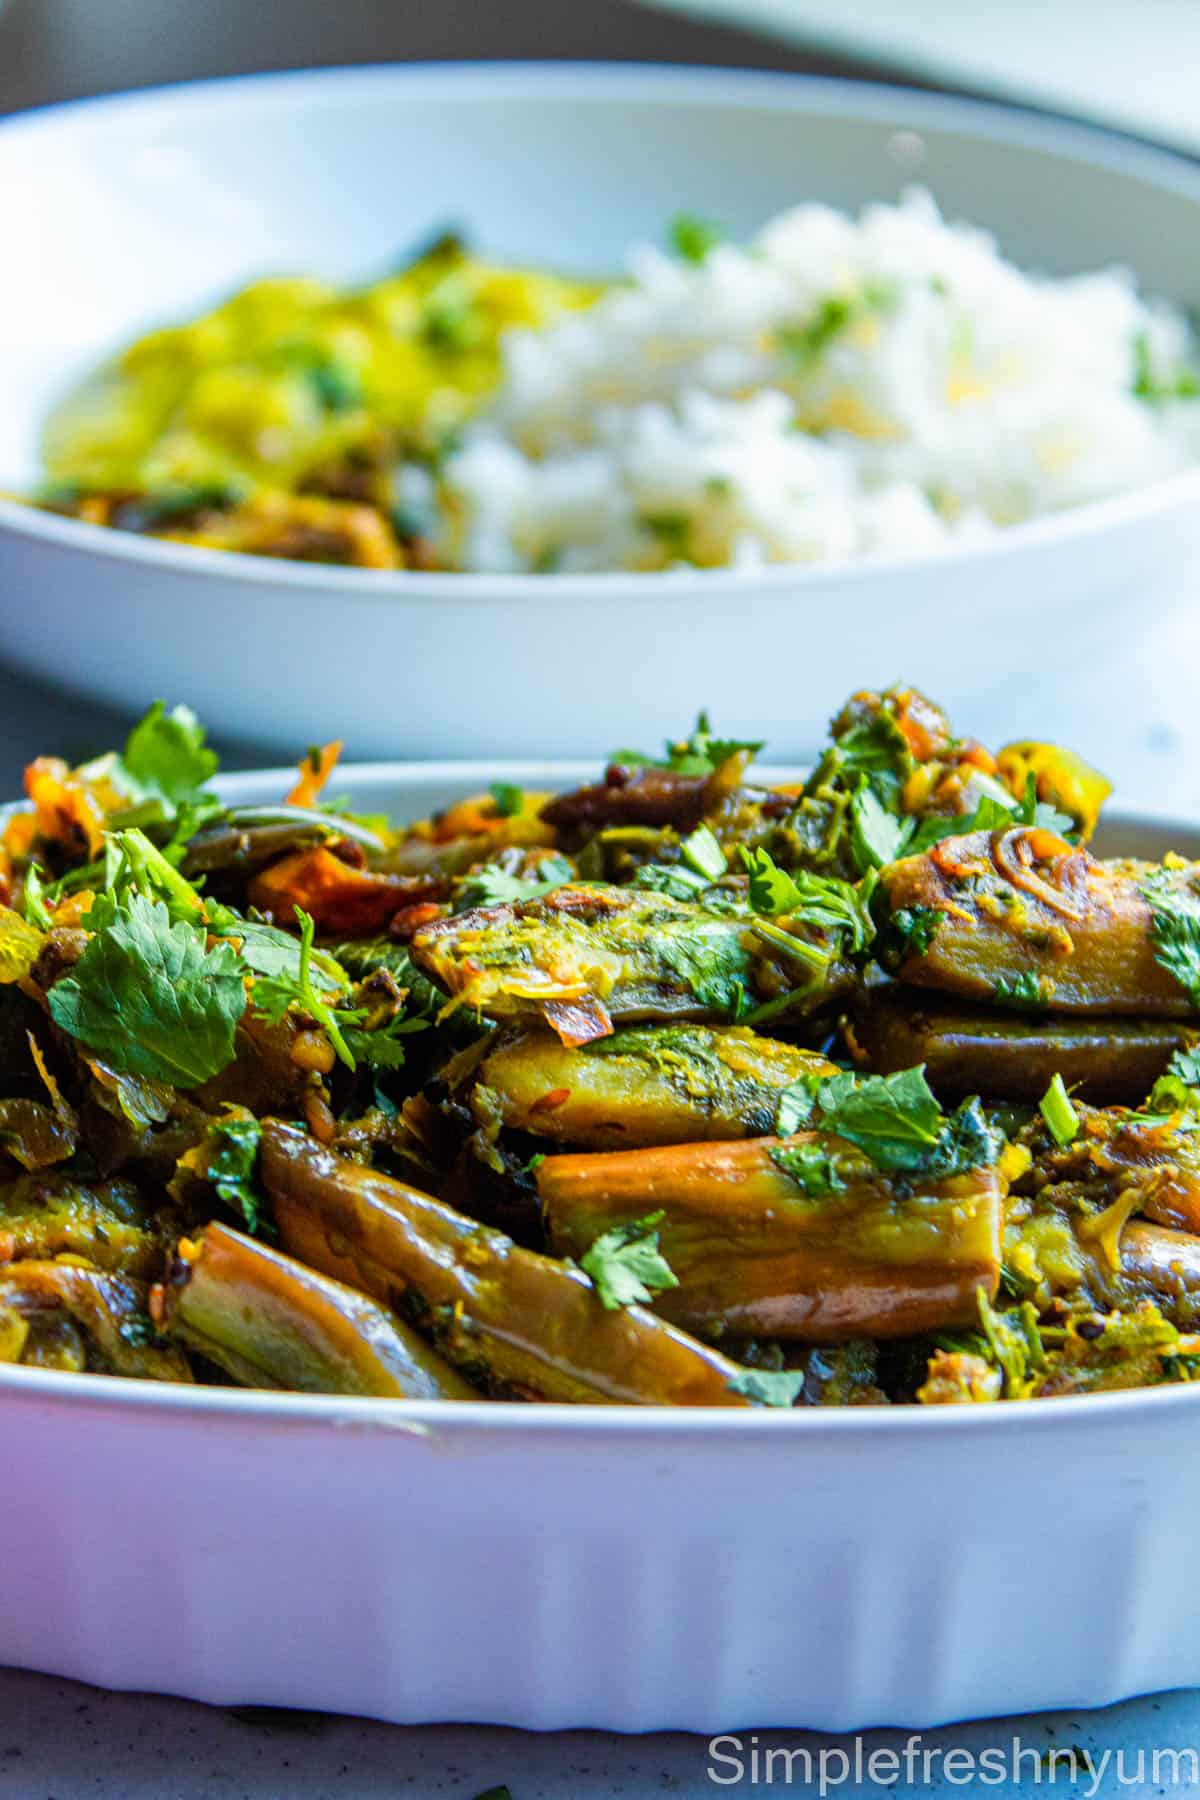 Brinjal fry served in a white oval serving dish with a plate served with rice, brinjal fry and dal in the background. Cilantro is garnished on top.